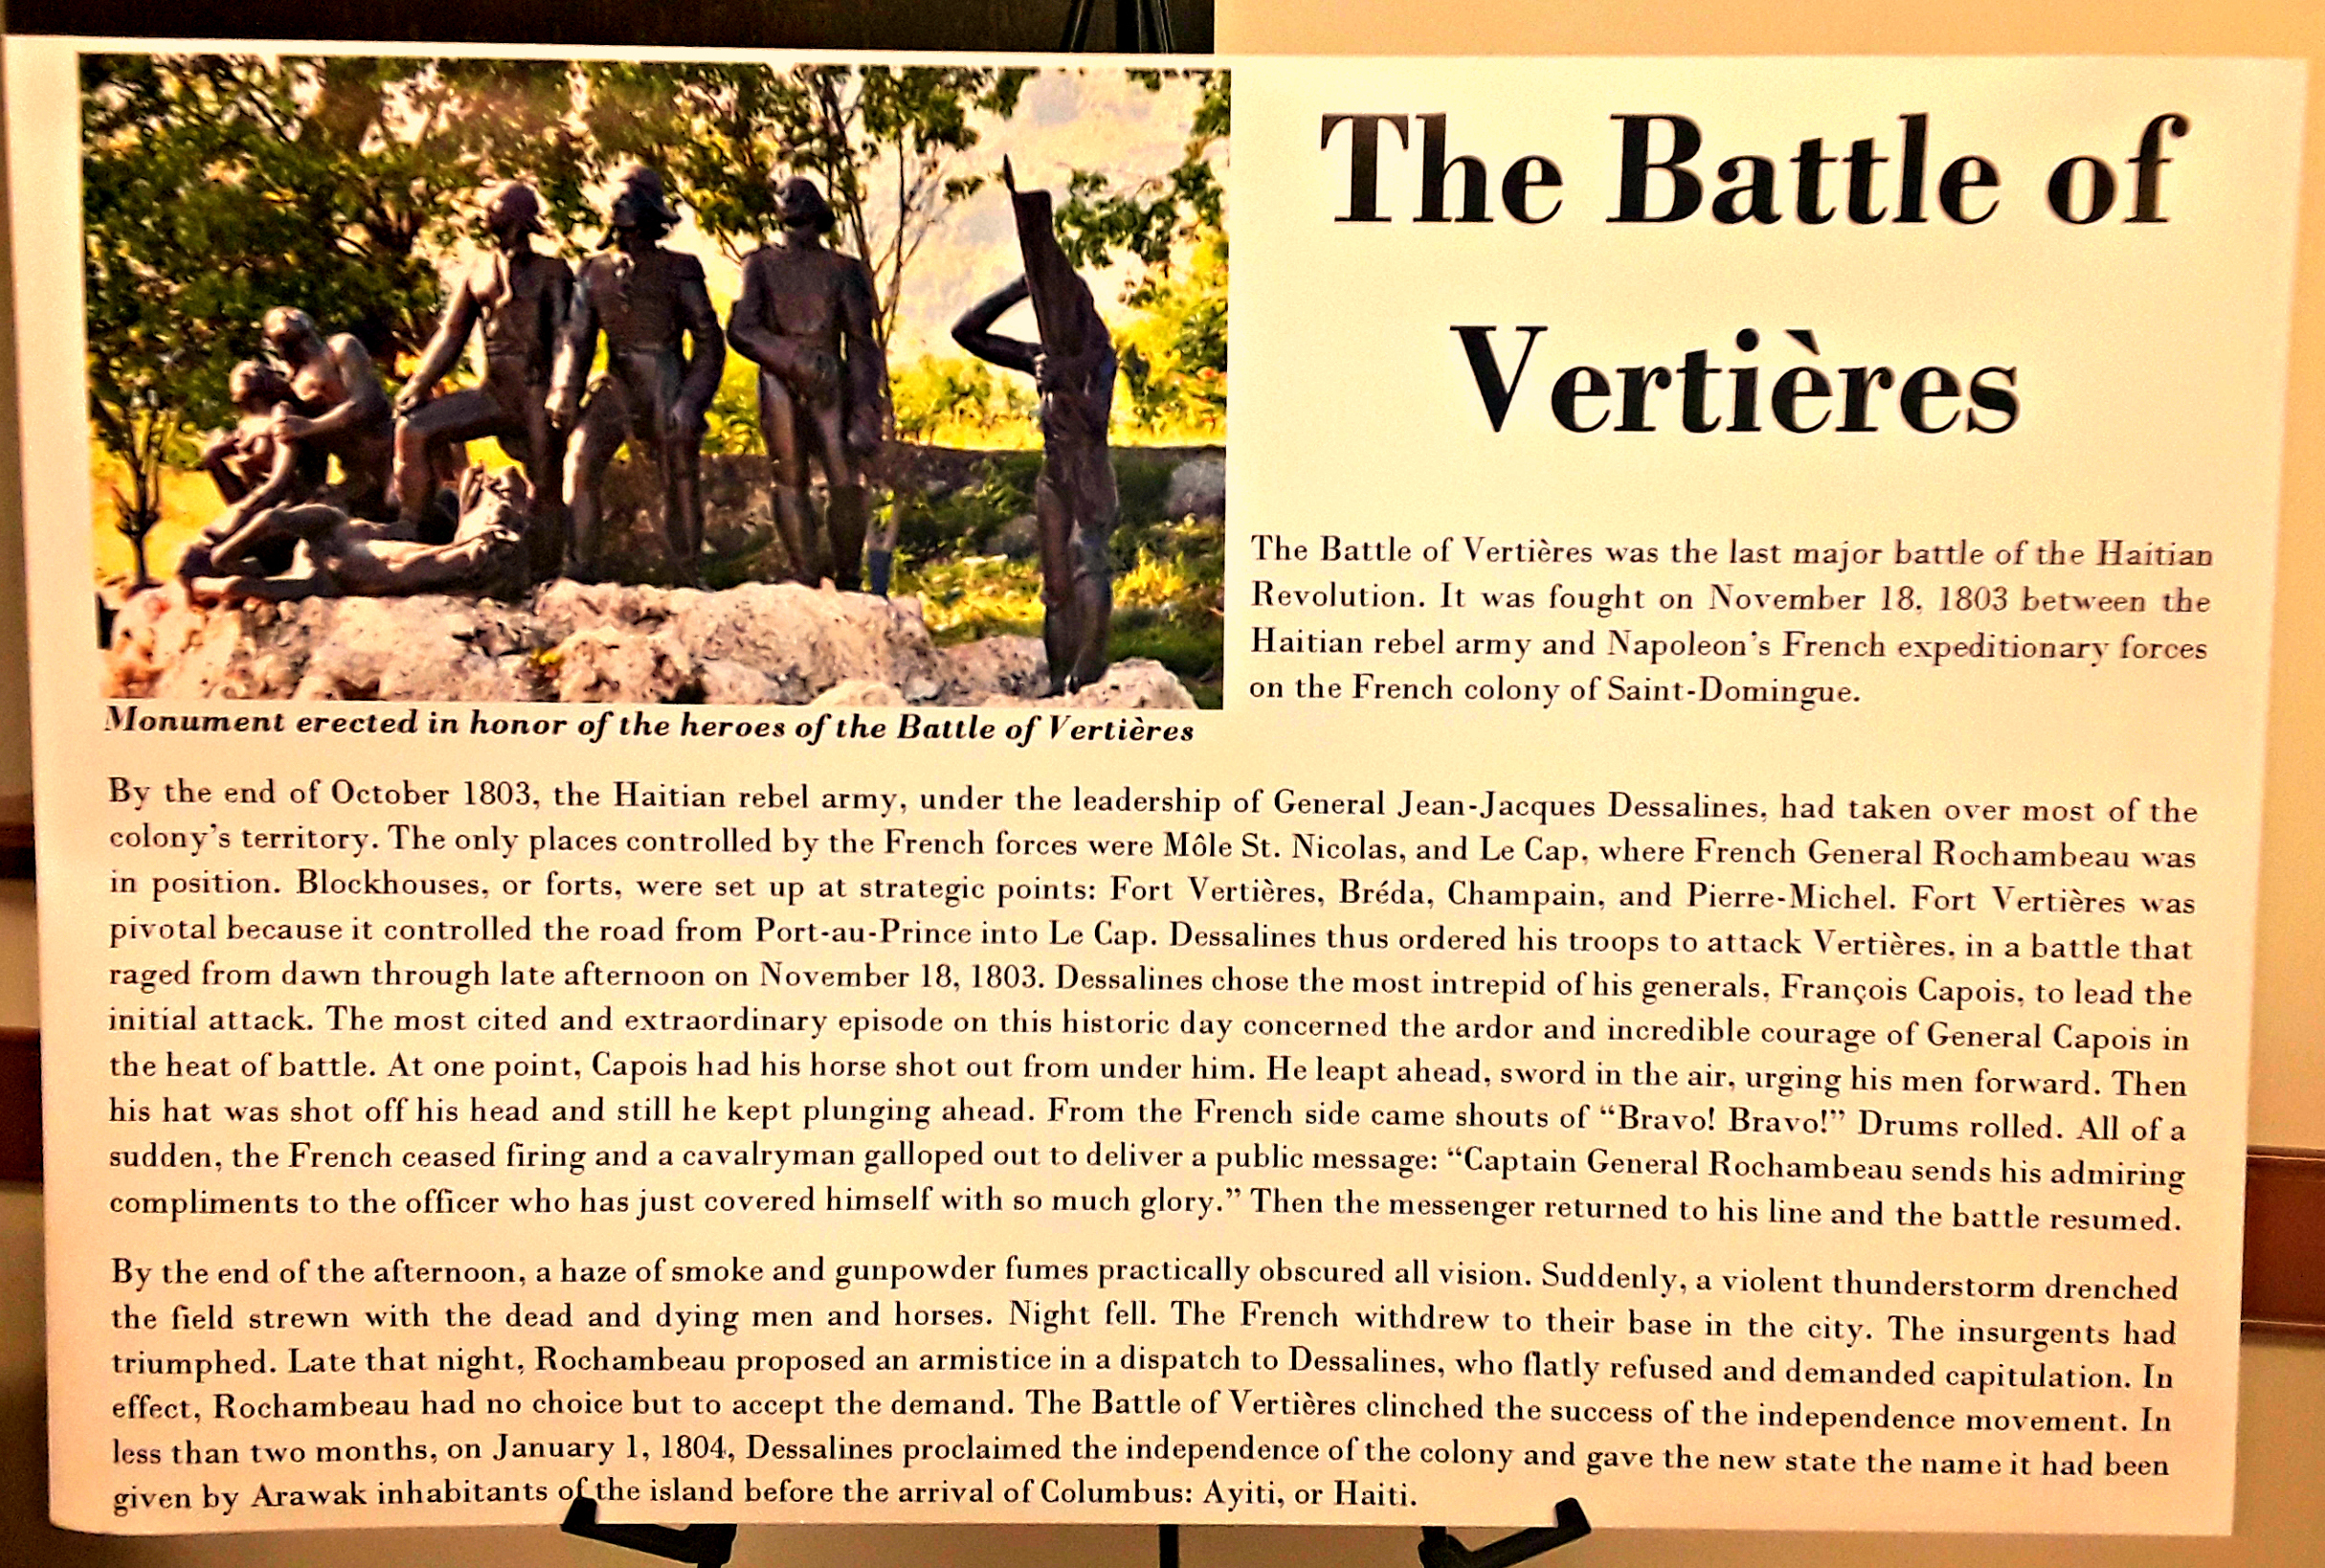 the components of revolution haitian success The haitian revolution is known as the largest and most successful slave rebellion in the western hemisphere and it was influenced by the french revolution of 1789.